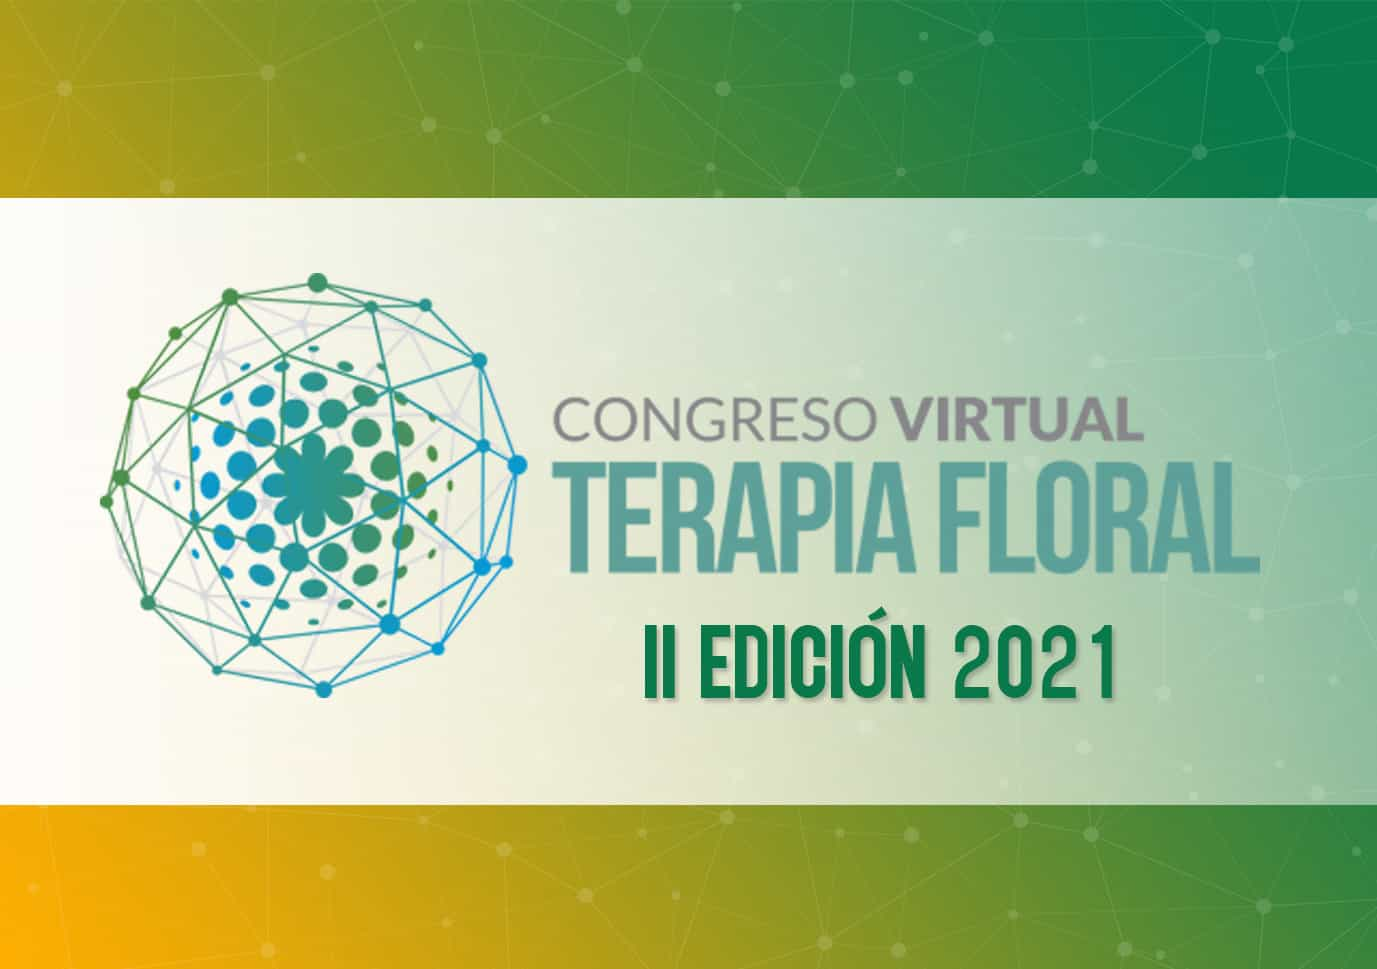 II Congreso Virtual de Terapia Floral 2021